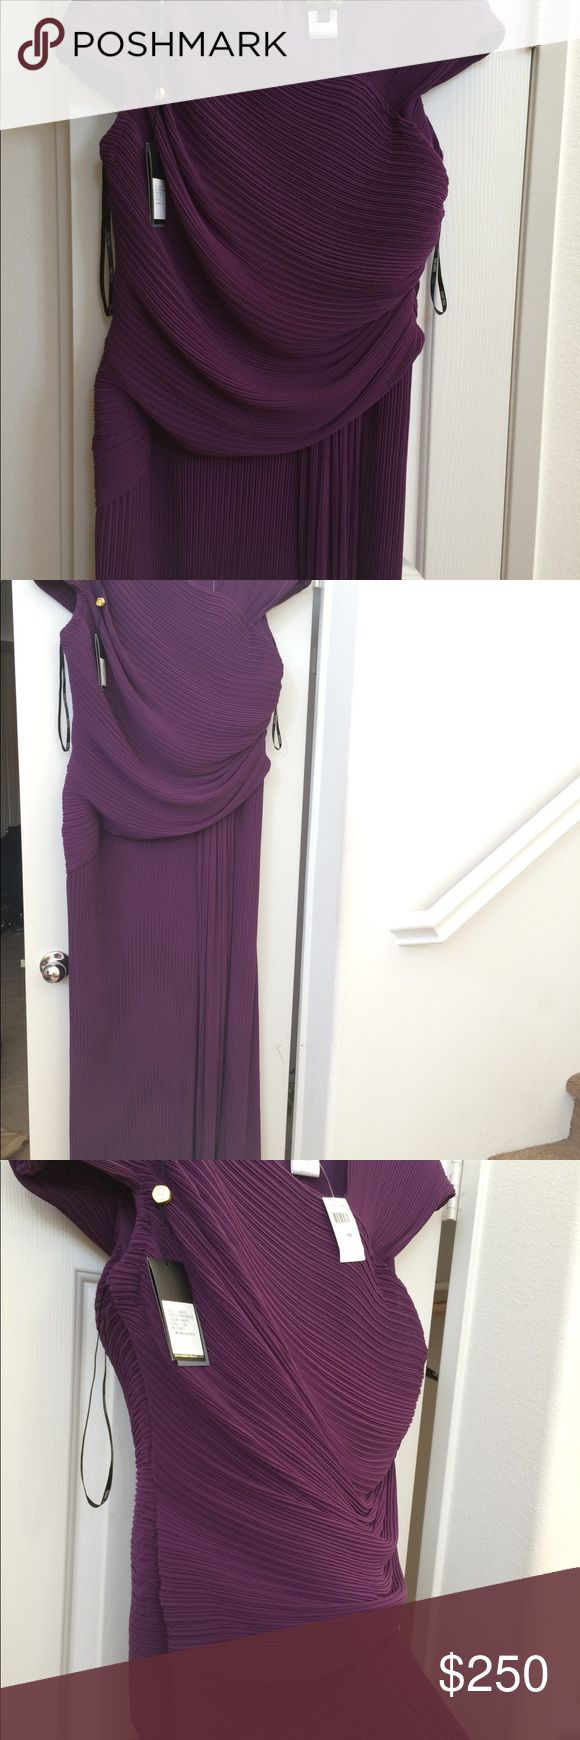 Tadashi Shoji Evening Grown/ Grape/ 14Q Exquisite Tadashi Shoji long evening dress. Brand new with tags and never worn. I have had for 5 months and don't know what to do with it. Original price was $599. This is a breathtaking dress and will turn all eyes. Tadashi Shoji Dresses Maxi